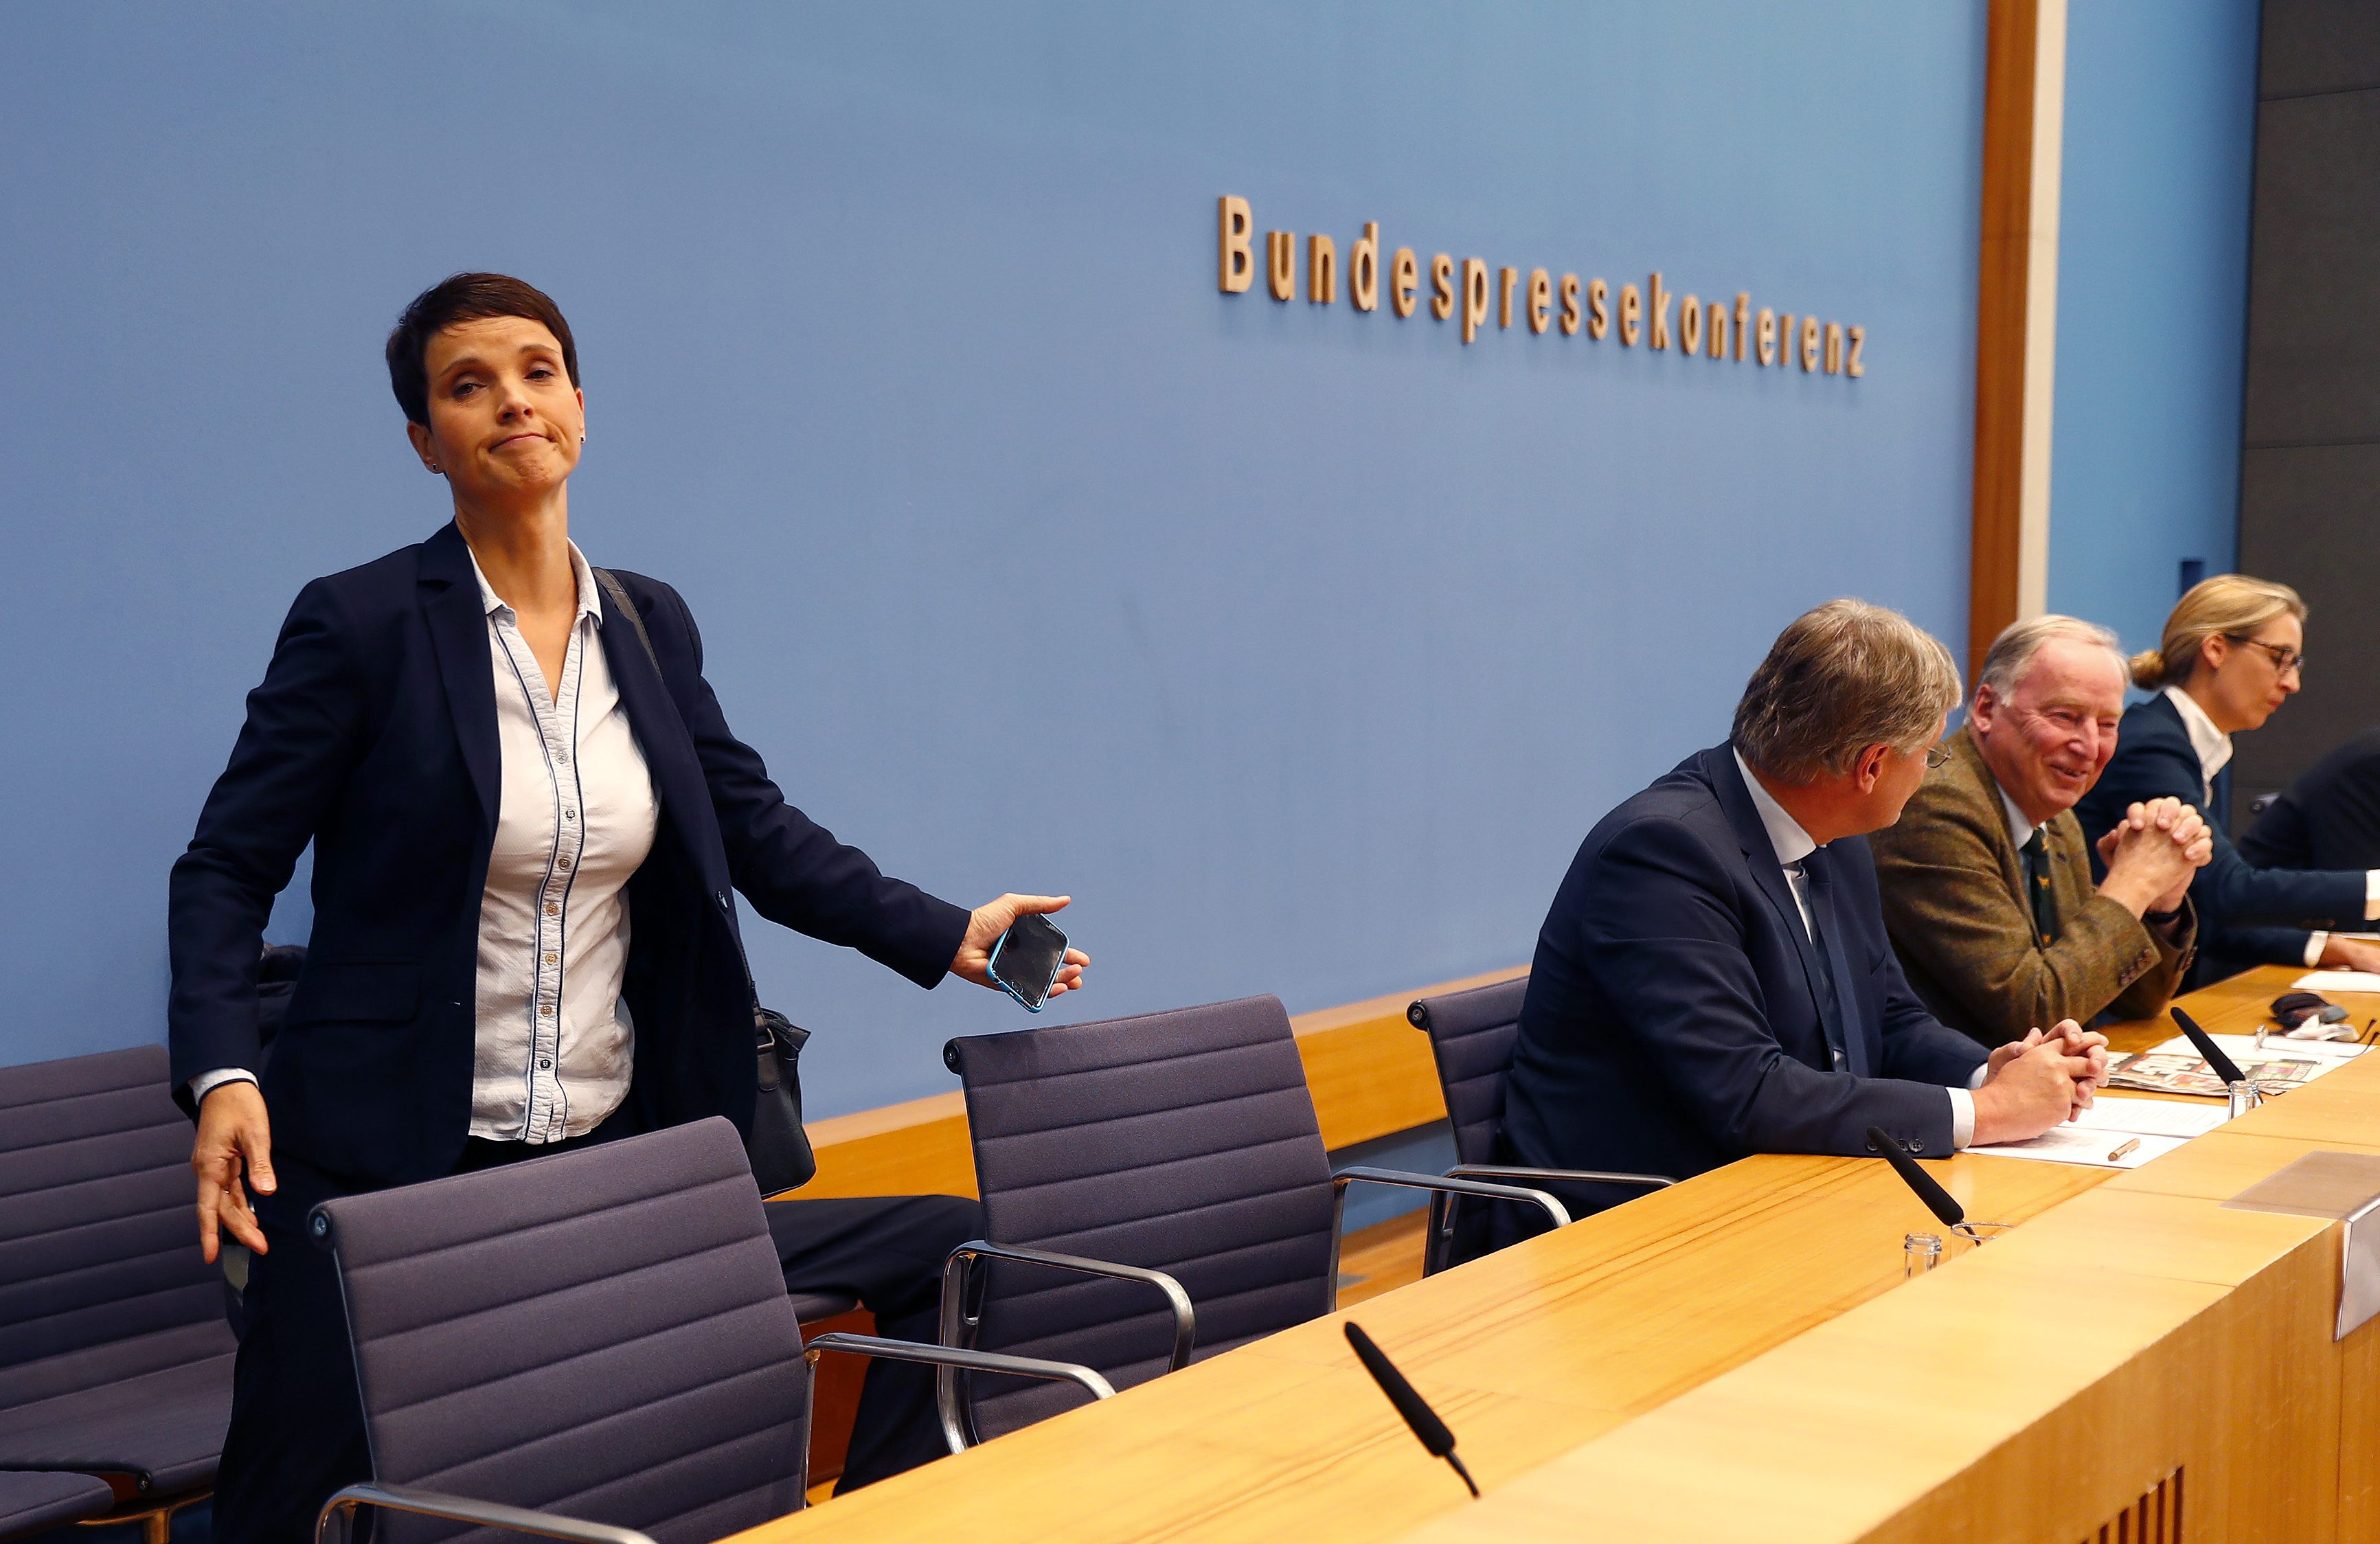 Frauke Petry, chairwoman of the anti-immigration party Alternative fuer Deutschland (AfD) leaves a news conference next to Joerg Meuthen (2nd L), leader of the party and  top candidates Alice Weidel (R) and Alexander Gauland in Berlin, Germany, September 25, 2017.